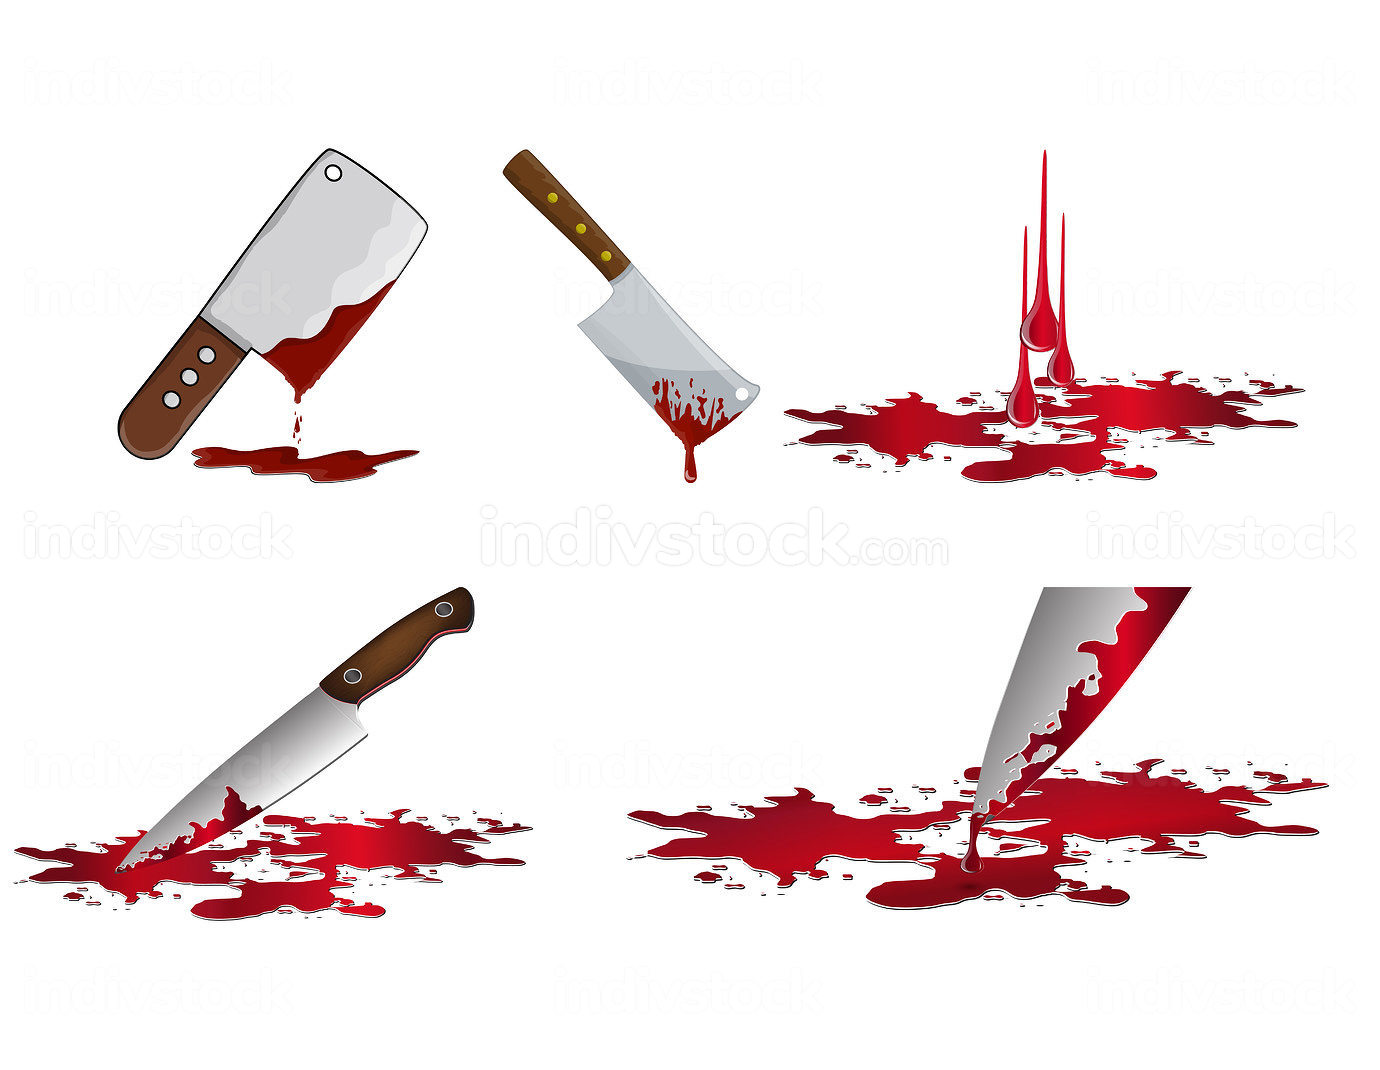 Bloody knife set. Murder weapon with red blood stains. Criminal